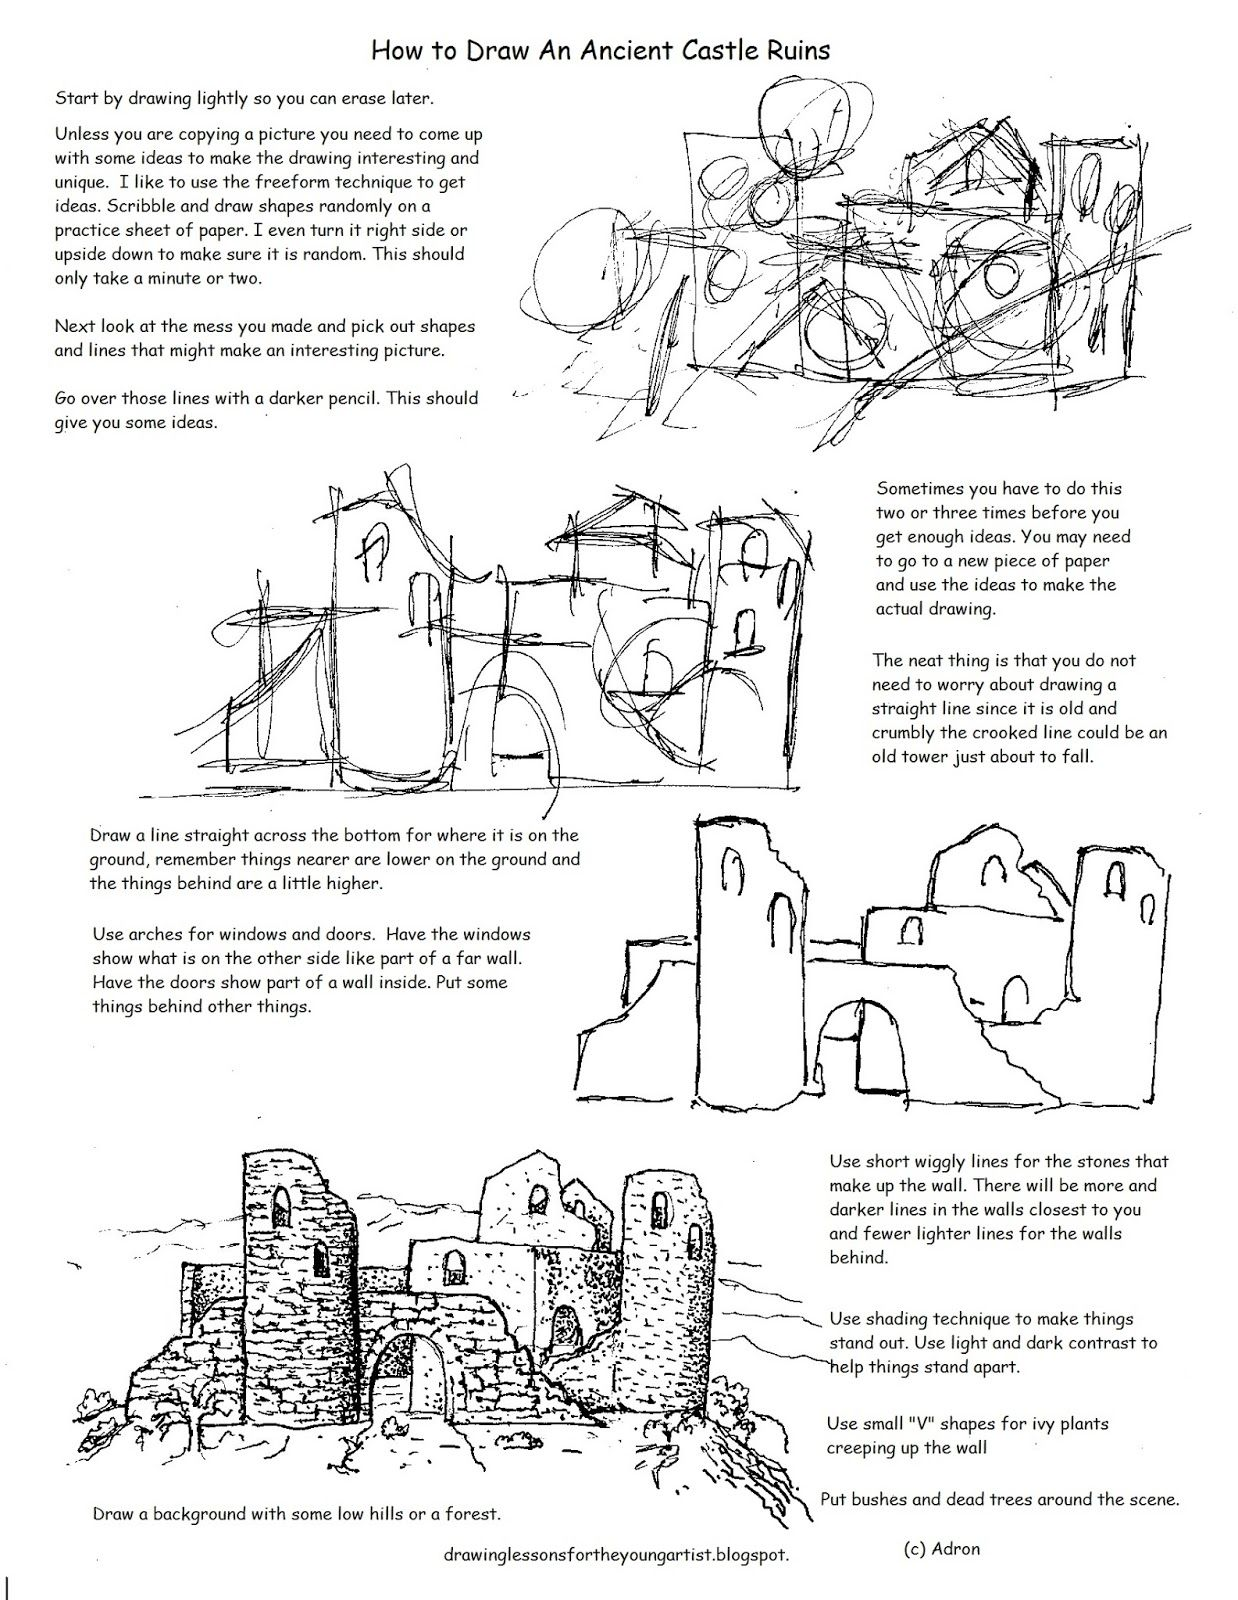 worksheet How To Draw Printable Worksheets how to draw worksheets for the young artist printable castle ruins